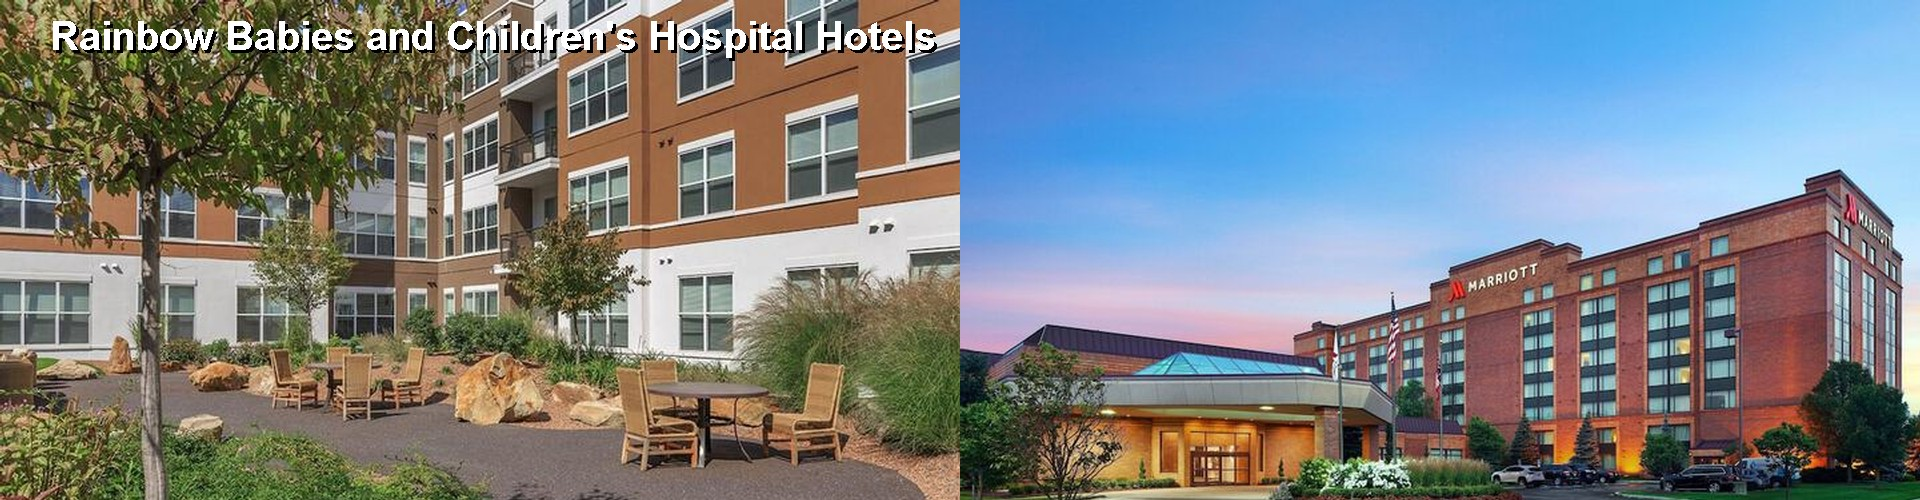 5 Best Hotels near Rainbow Babies and Children's Hospital